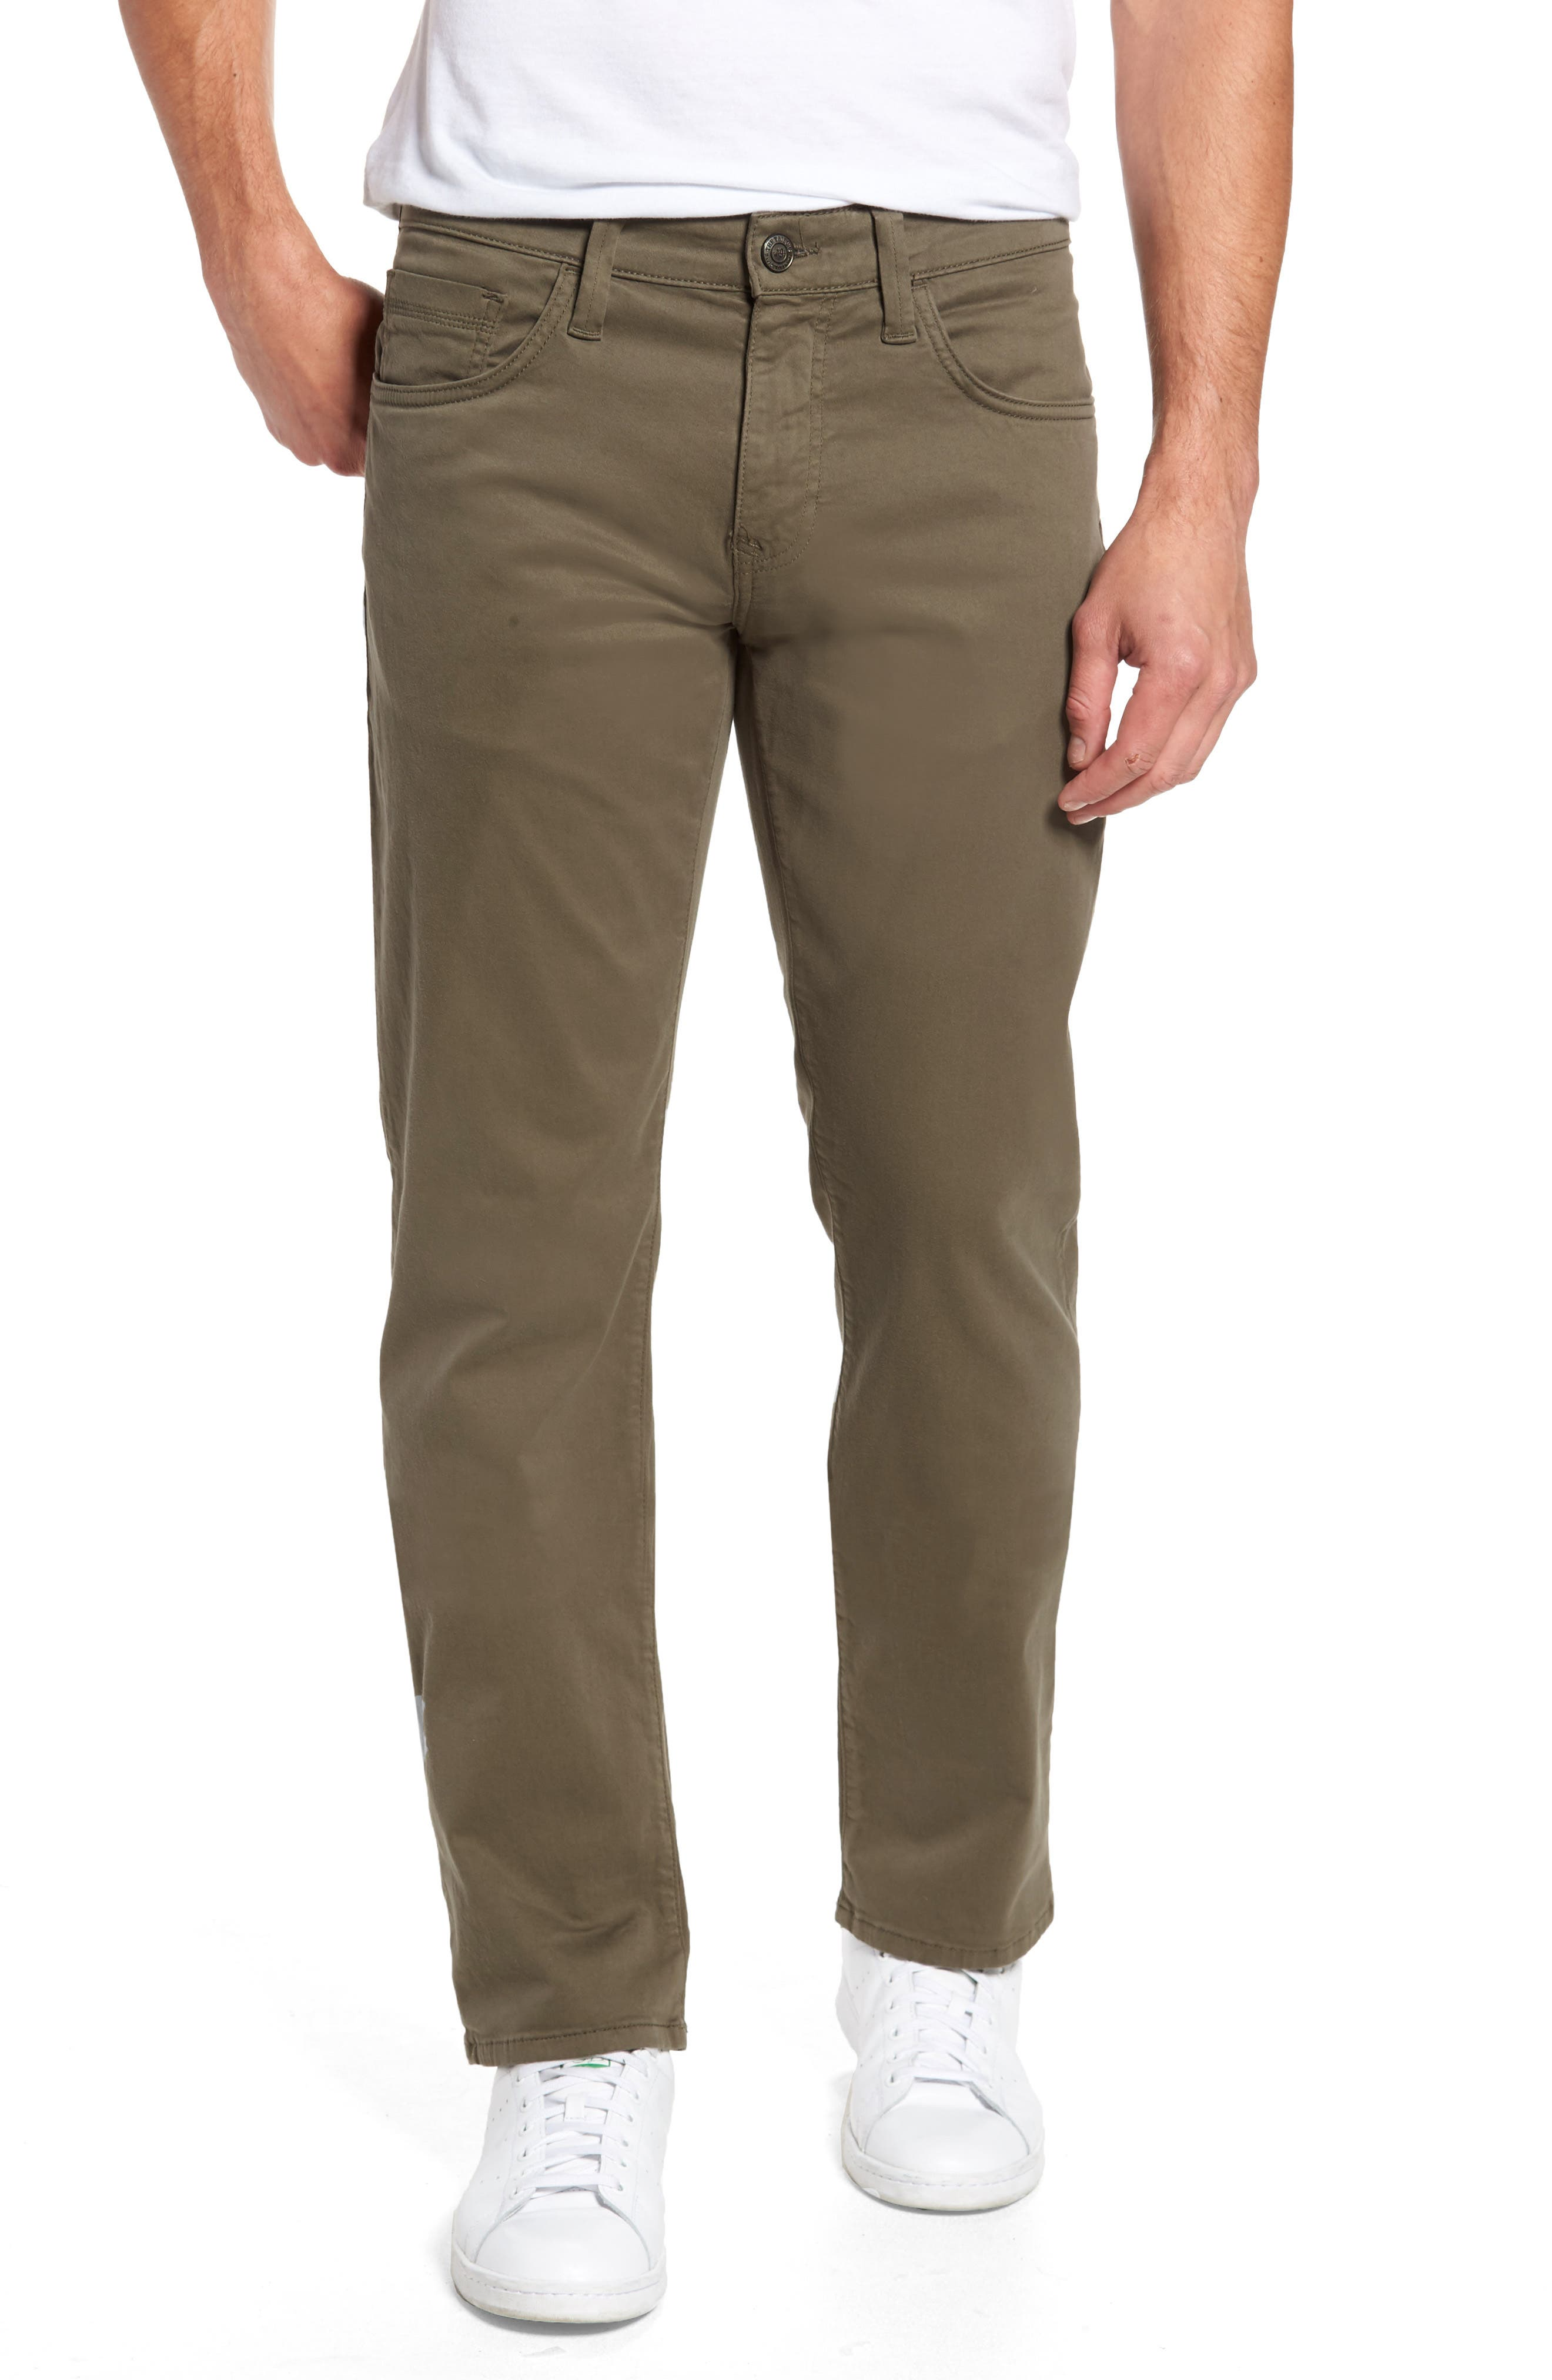 Zach Straight Fit Twill Pants,                         Main,                         color, DUSTY OLIVE TWILL